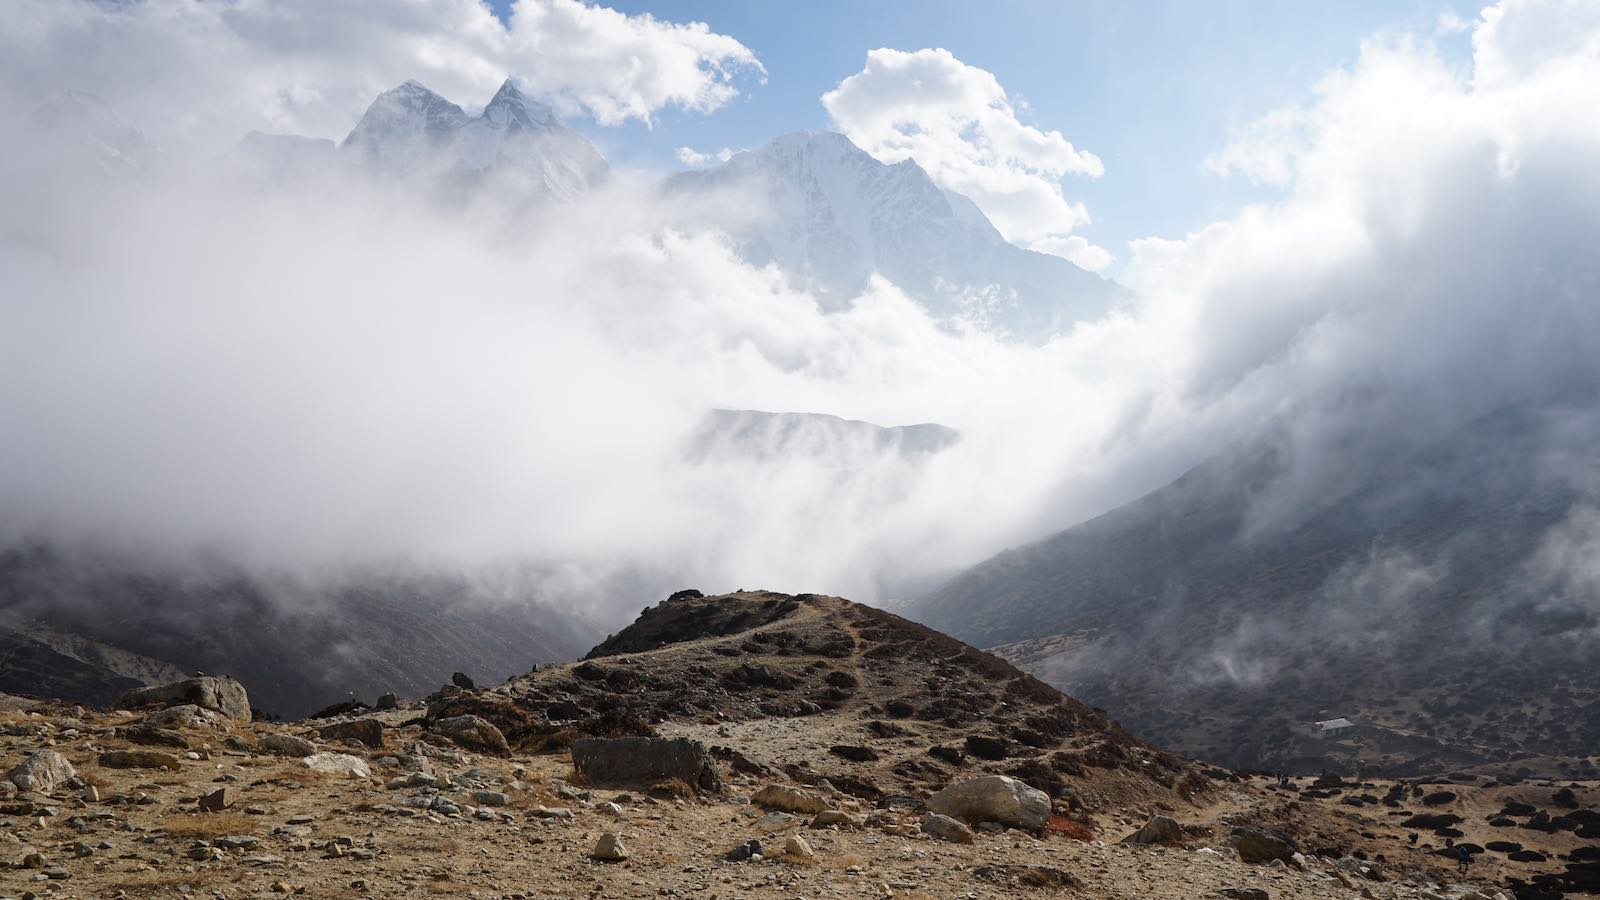 Second half of the trek was almost mystical with the 'low' hanging clouds shrouding the adjacent mountains